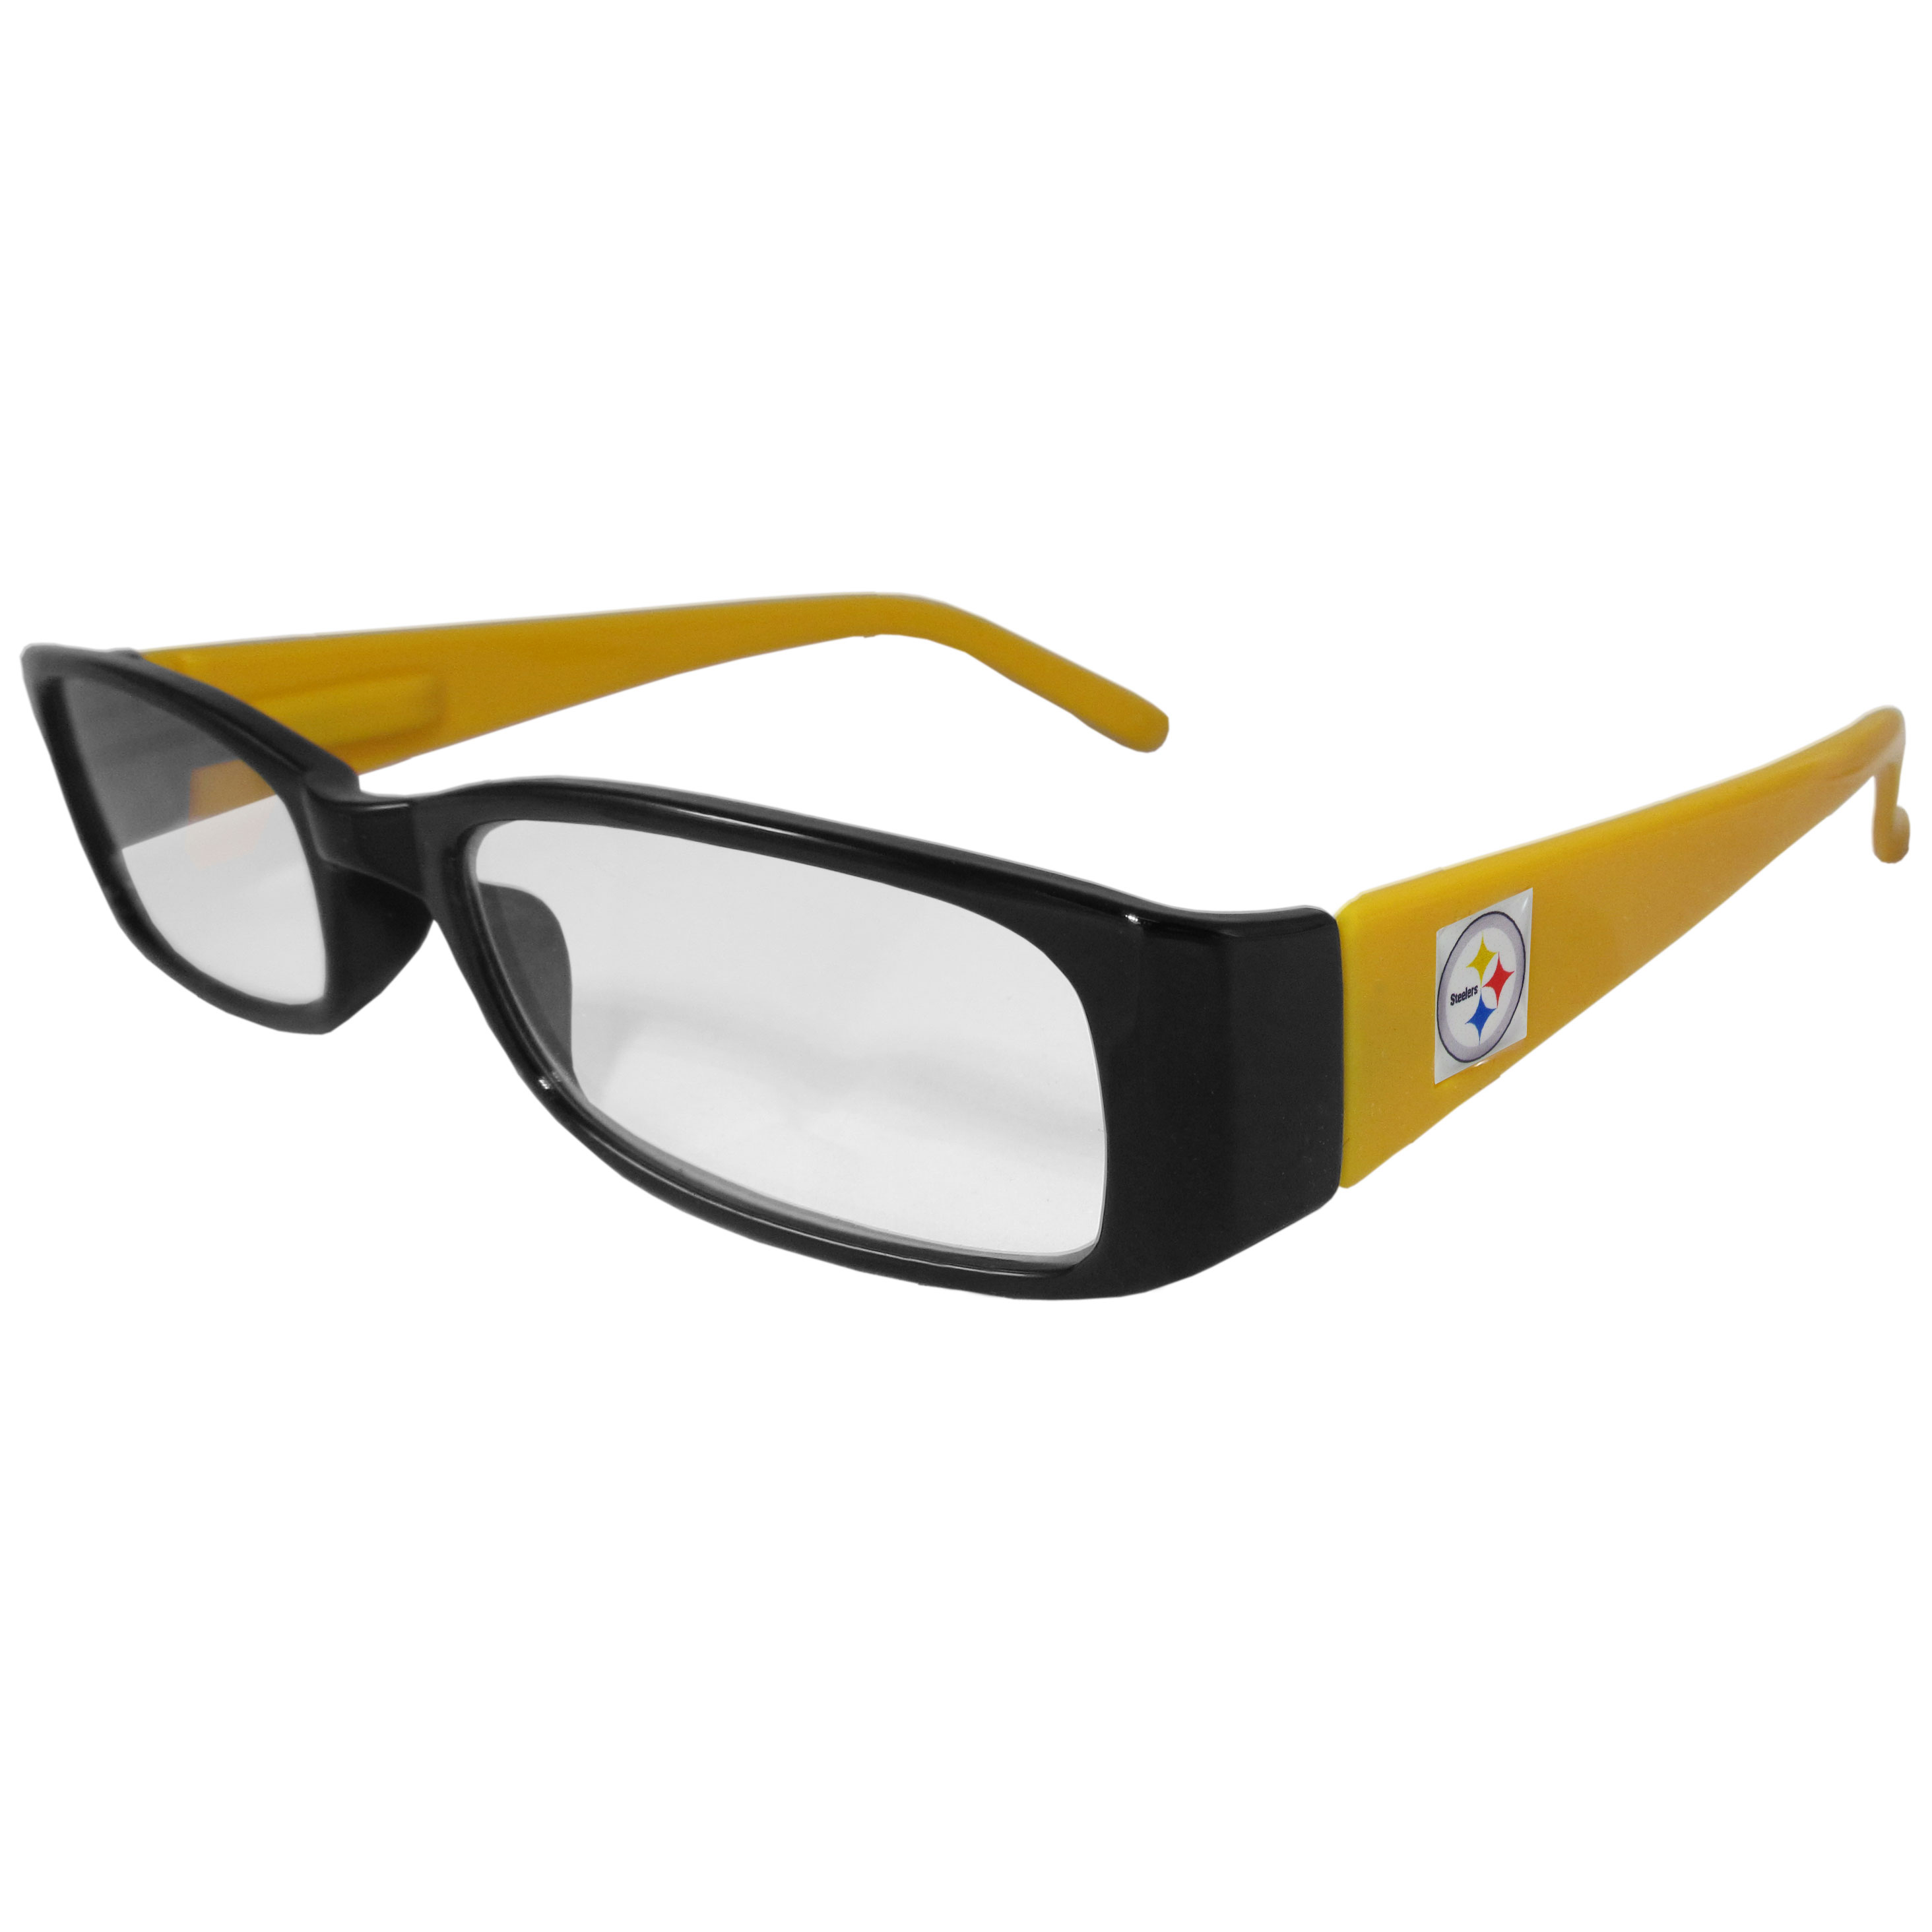 Pittsburgh Steelers Reading Glasses +1.25 - Our Pittsburgh Steelers reading glasses are 5.25 inches wide and feature the team logo on each arm. Magnification Power 1.25